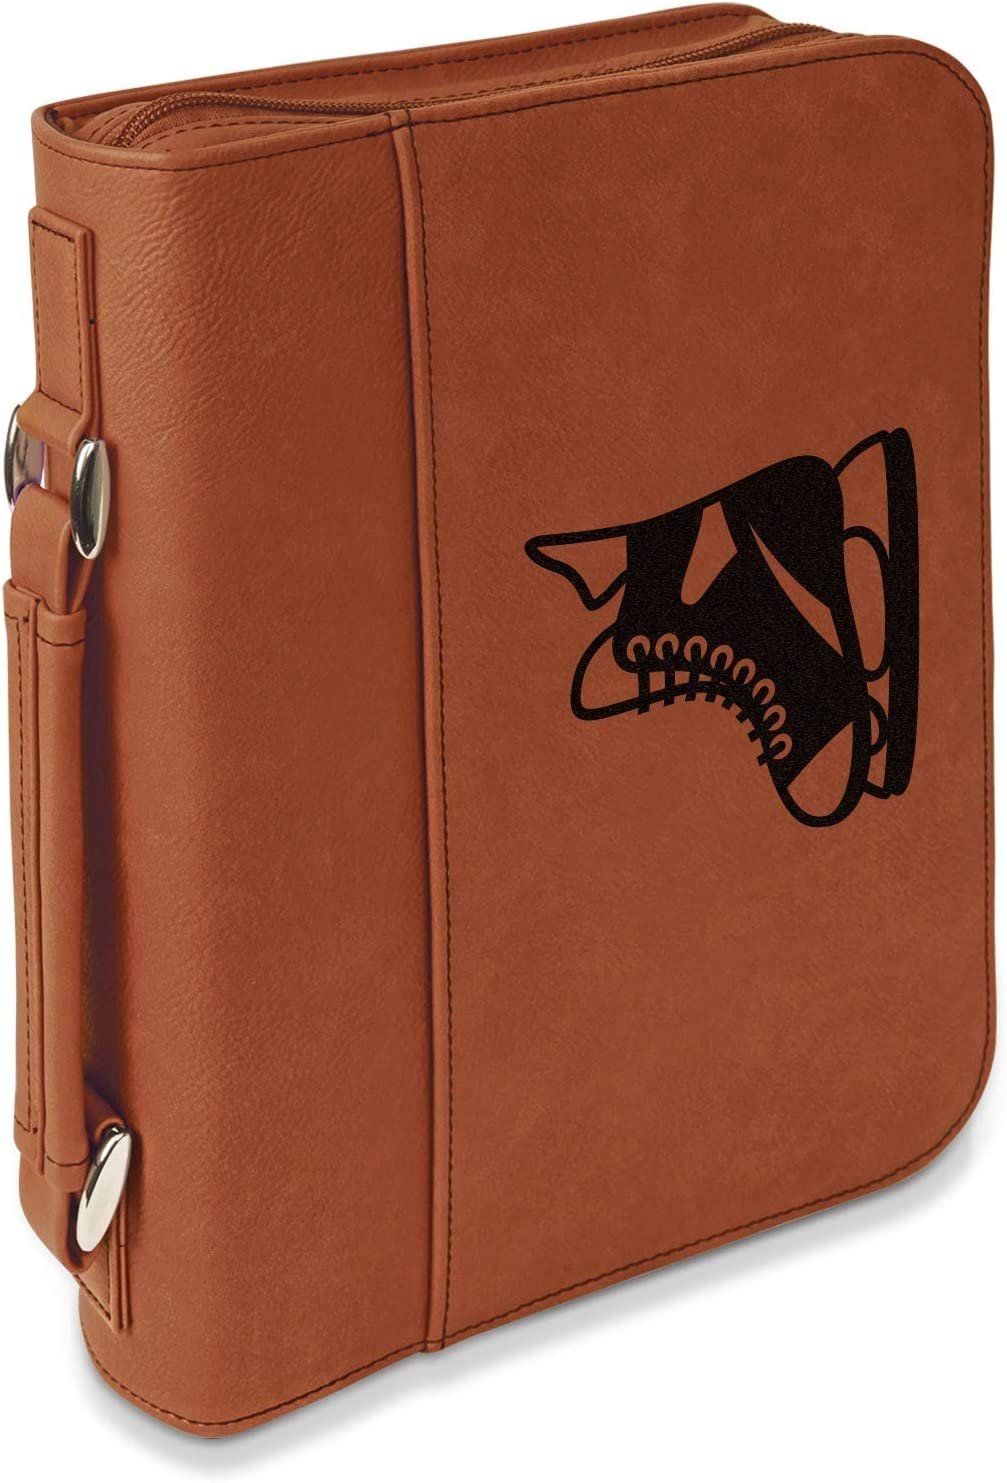 Hockey Leatherette Bible Industry No. 1 Max 81% OFF Cover with Large Handle Zipper Do -